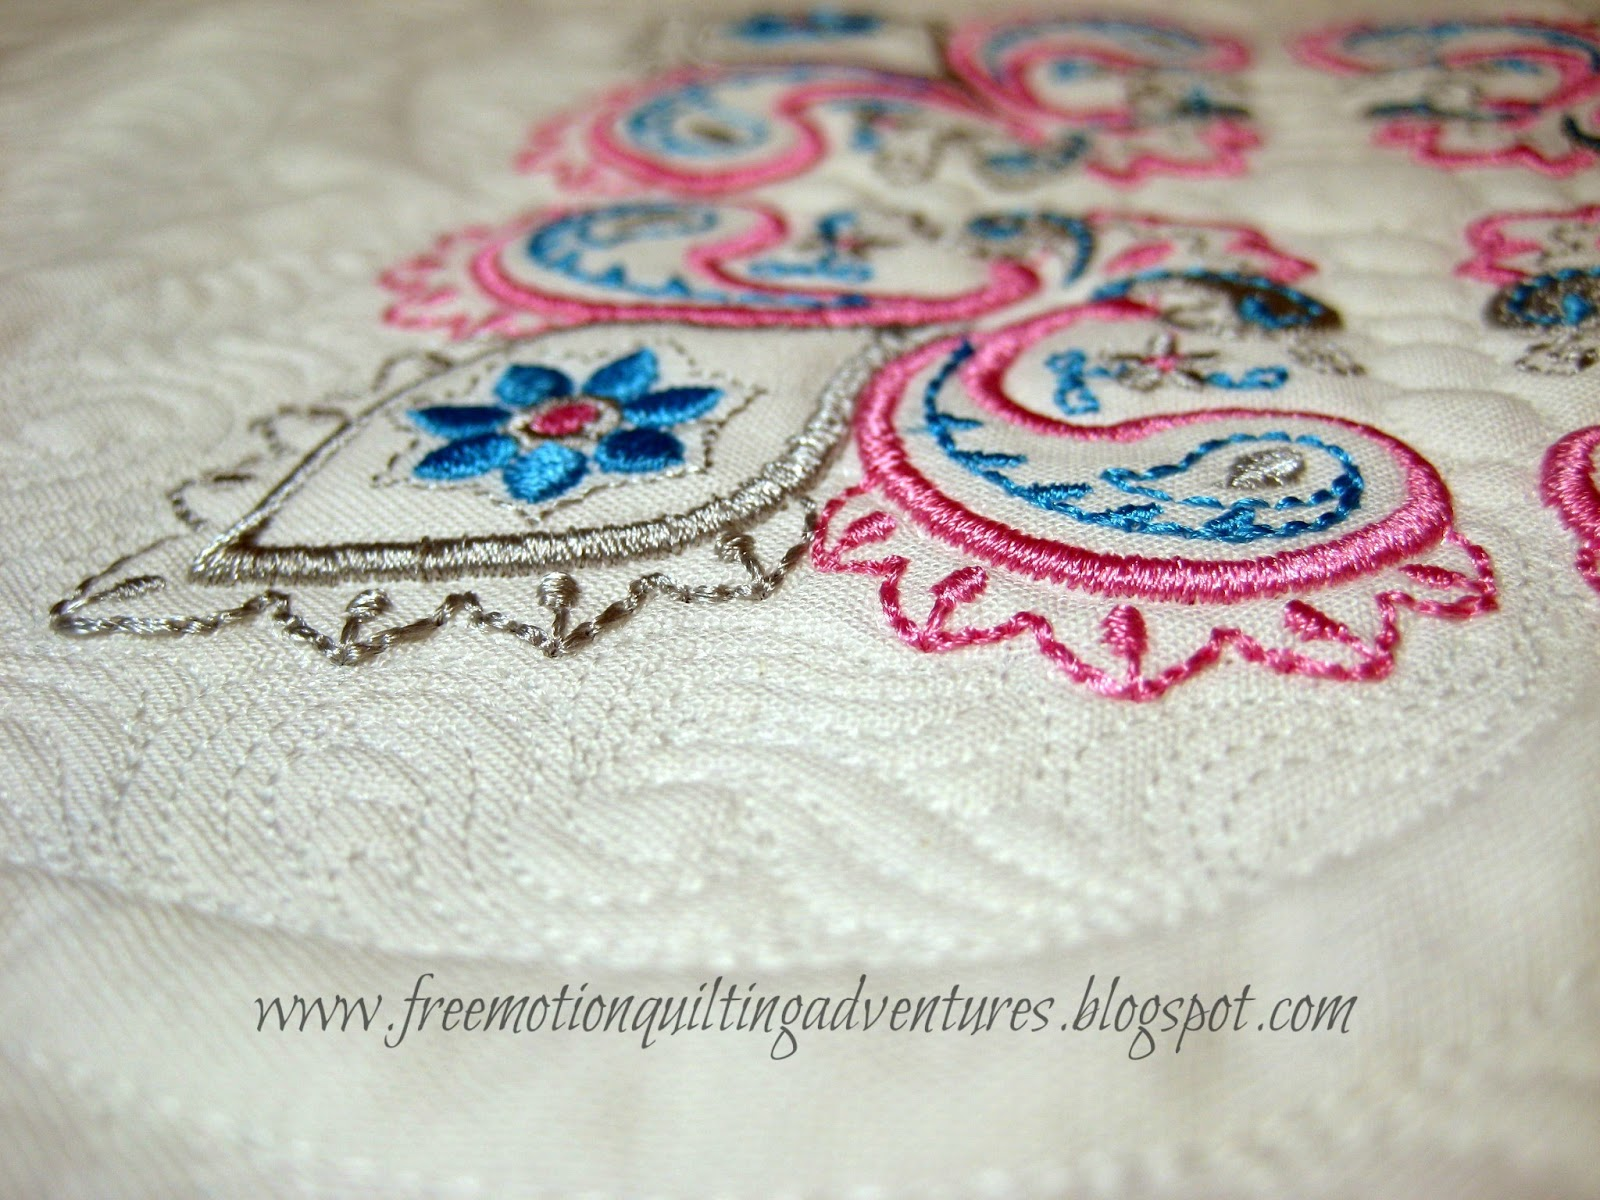 paisley embroidery free motion quilting detail